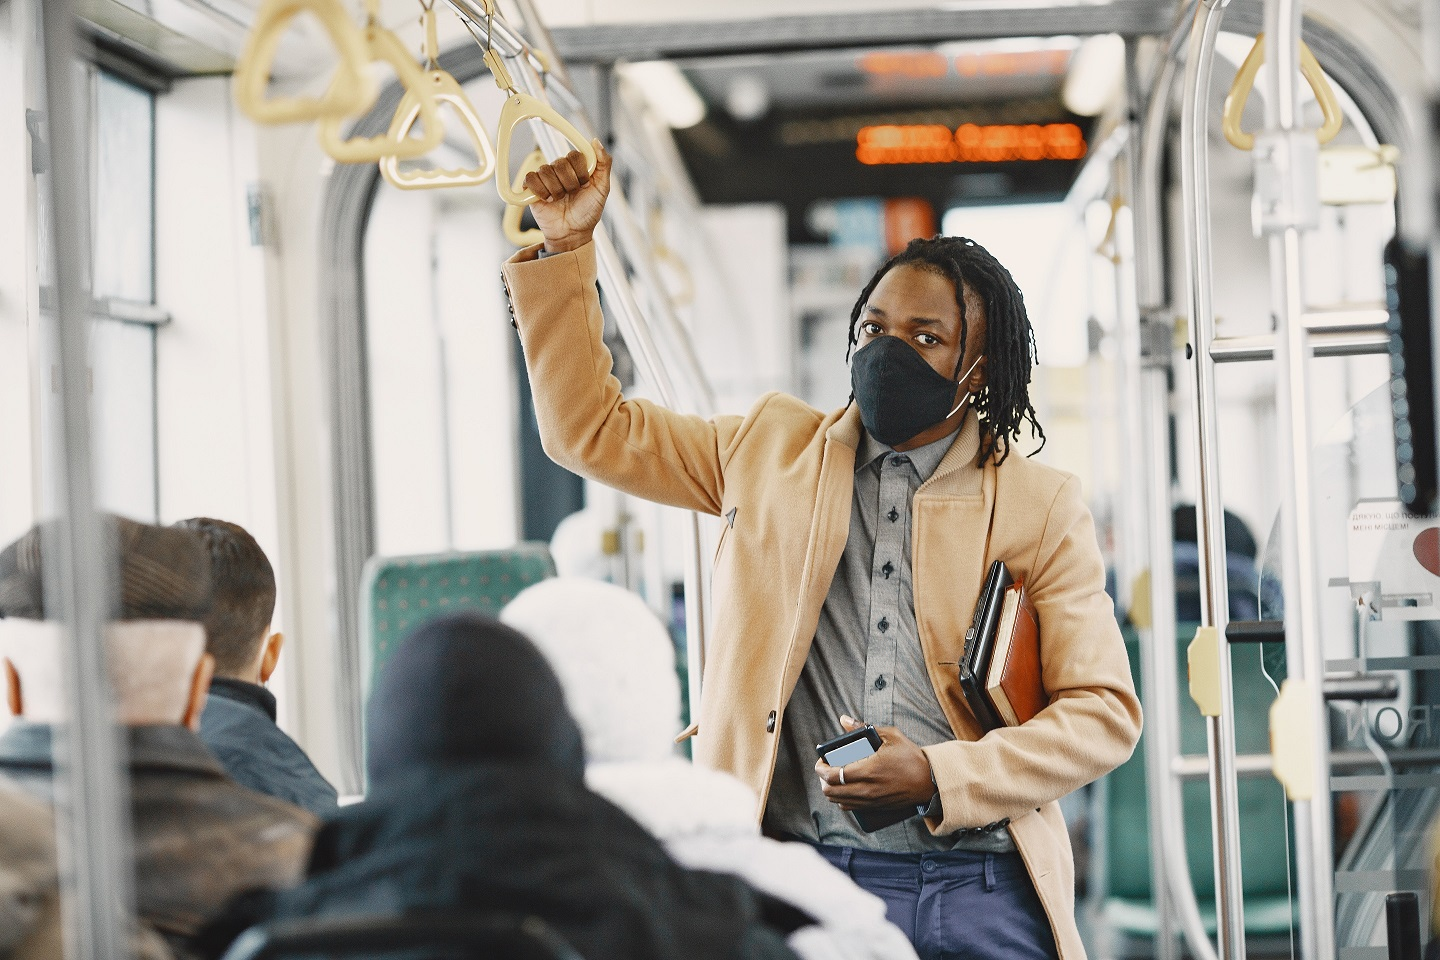 African American man riding in the city bus. Guy in a brown coat. Corona virus concept.